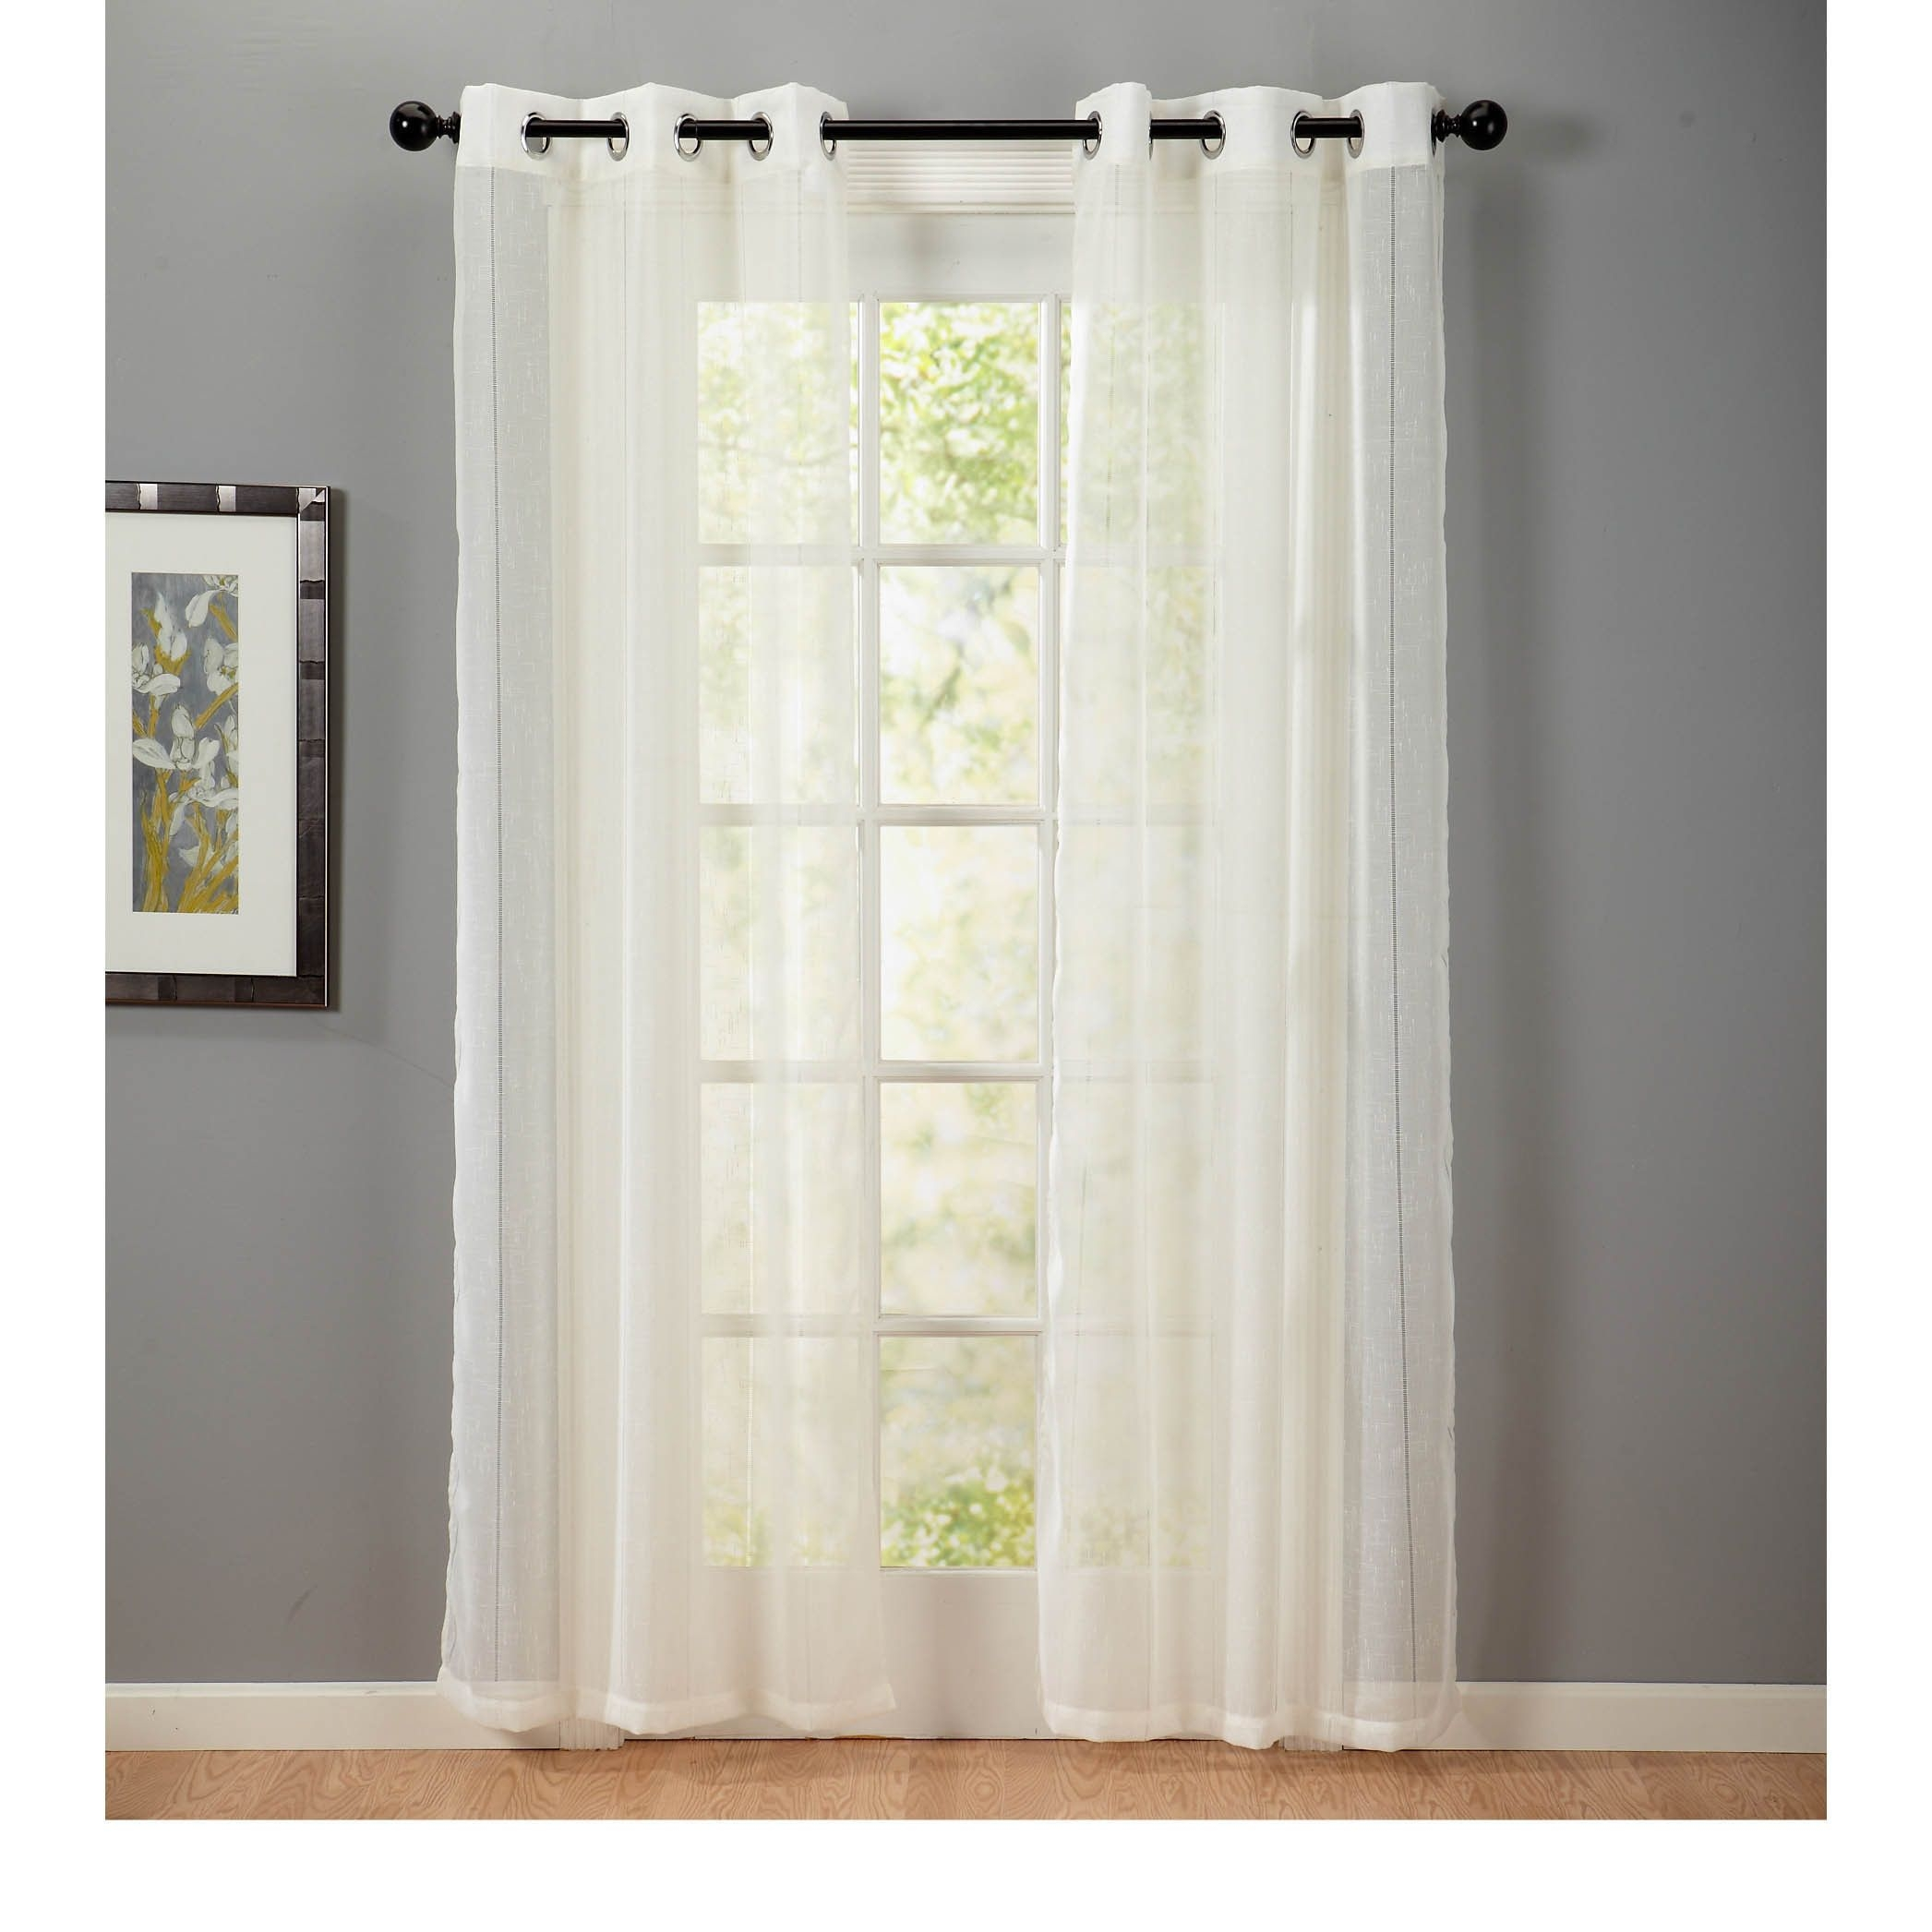 Home Fashion Designs Katherine Collection Textured Linen Grommet Regarding Textured Linen Curtains (Image 6 of 15)